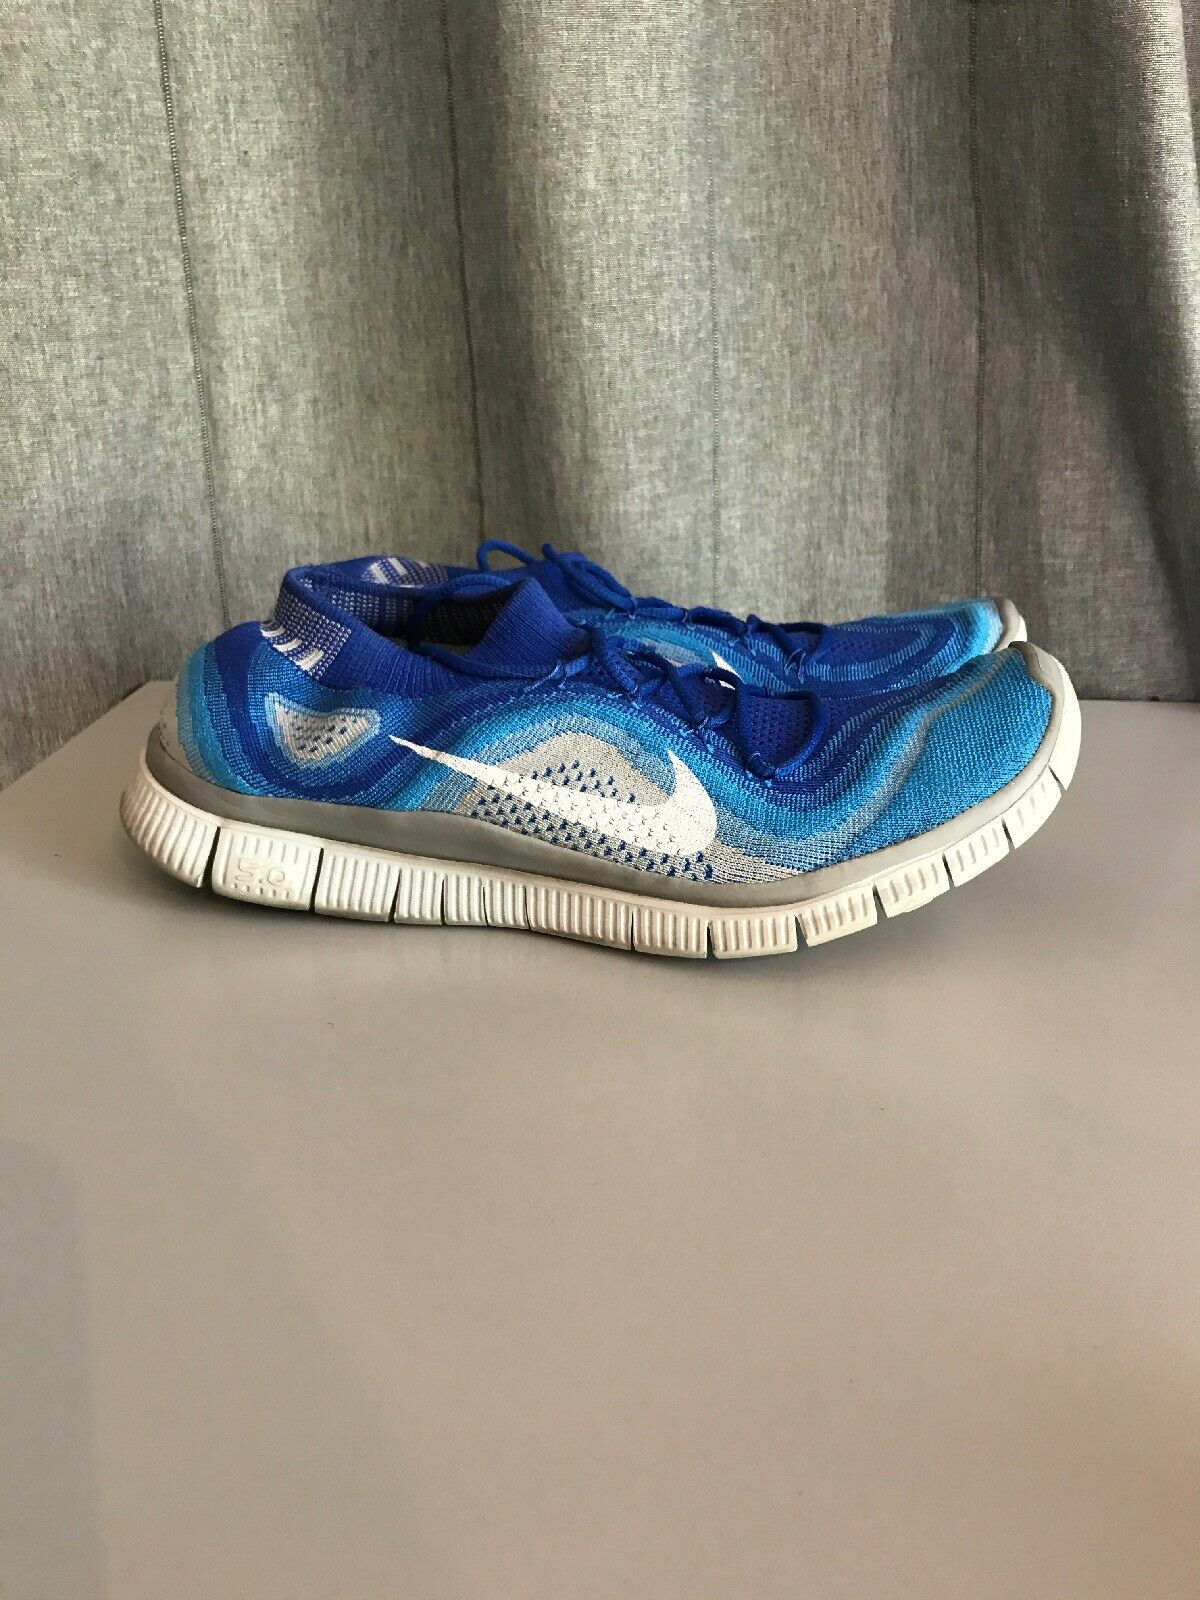 NIKE FREE 5.0 FLYKNIT 615805-414 Men's Athletic Sneakers Size 12 bluee White Grey